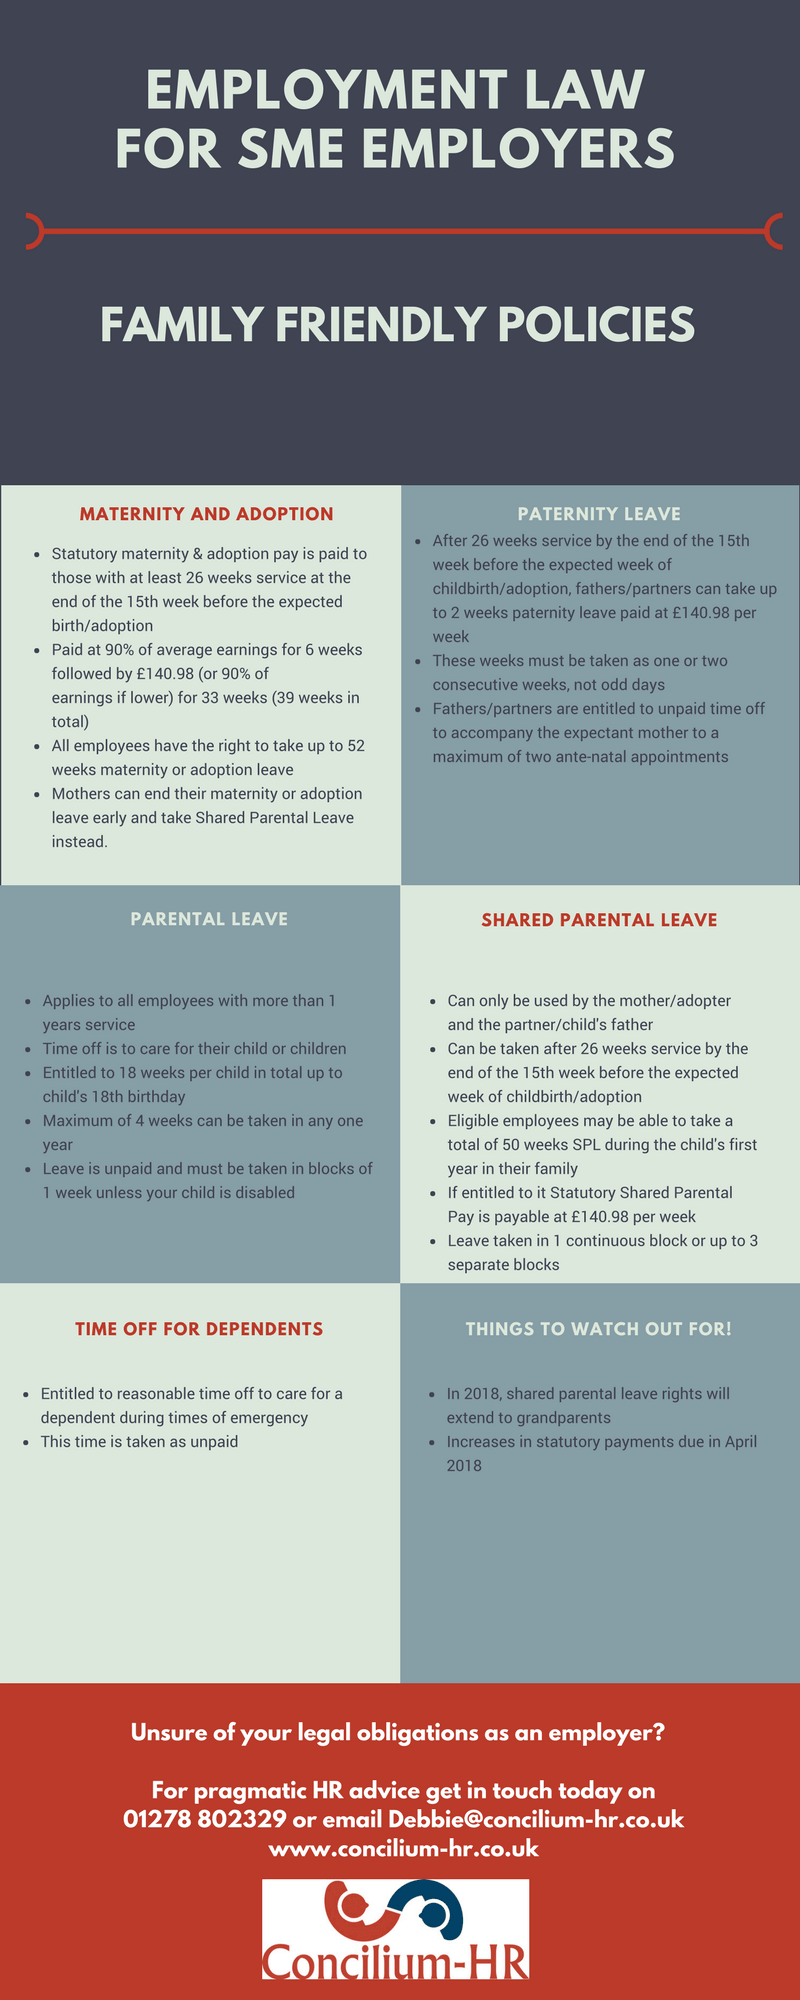 Employment Law - Family Friendly Policies